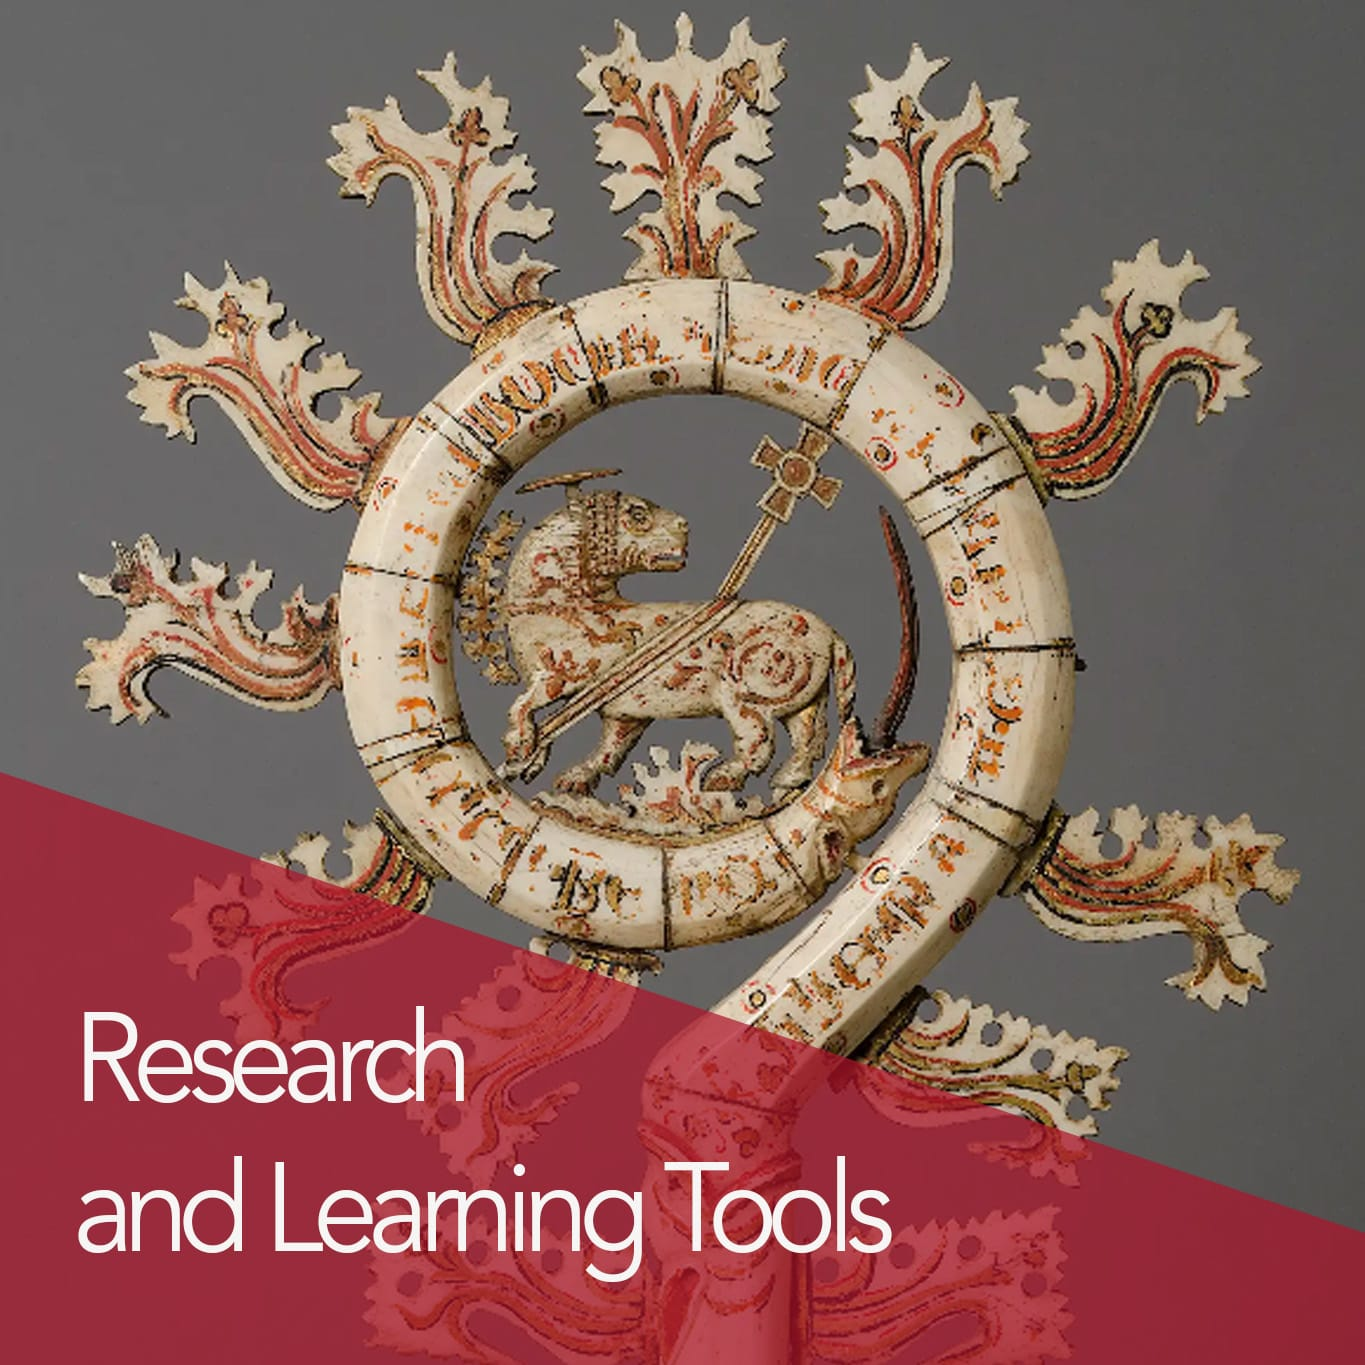 Click here to see Research and Learning Tools.